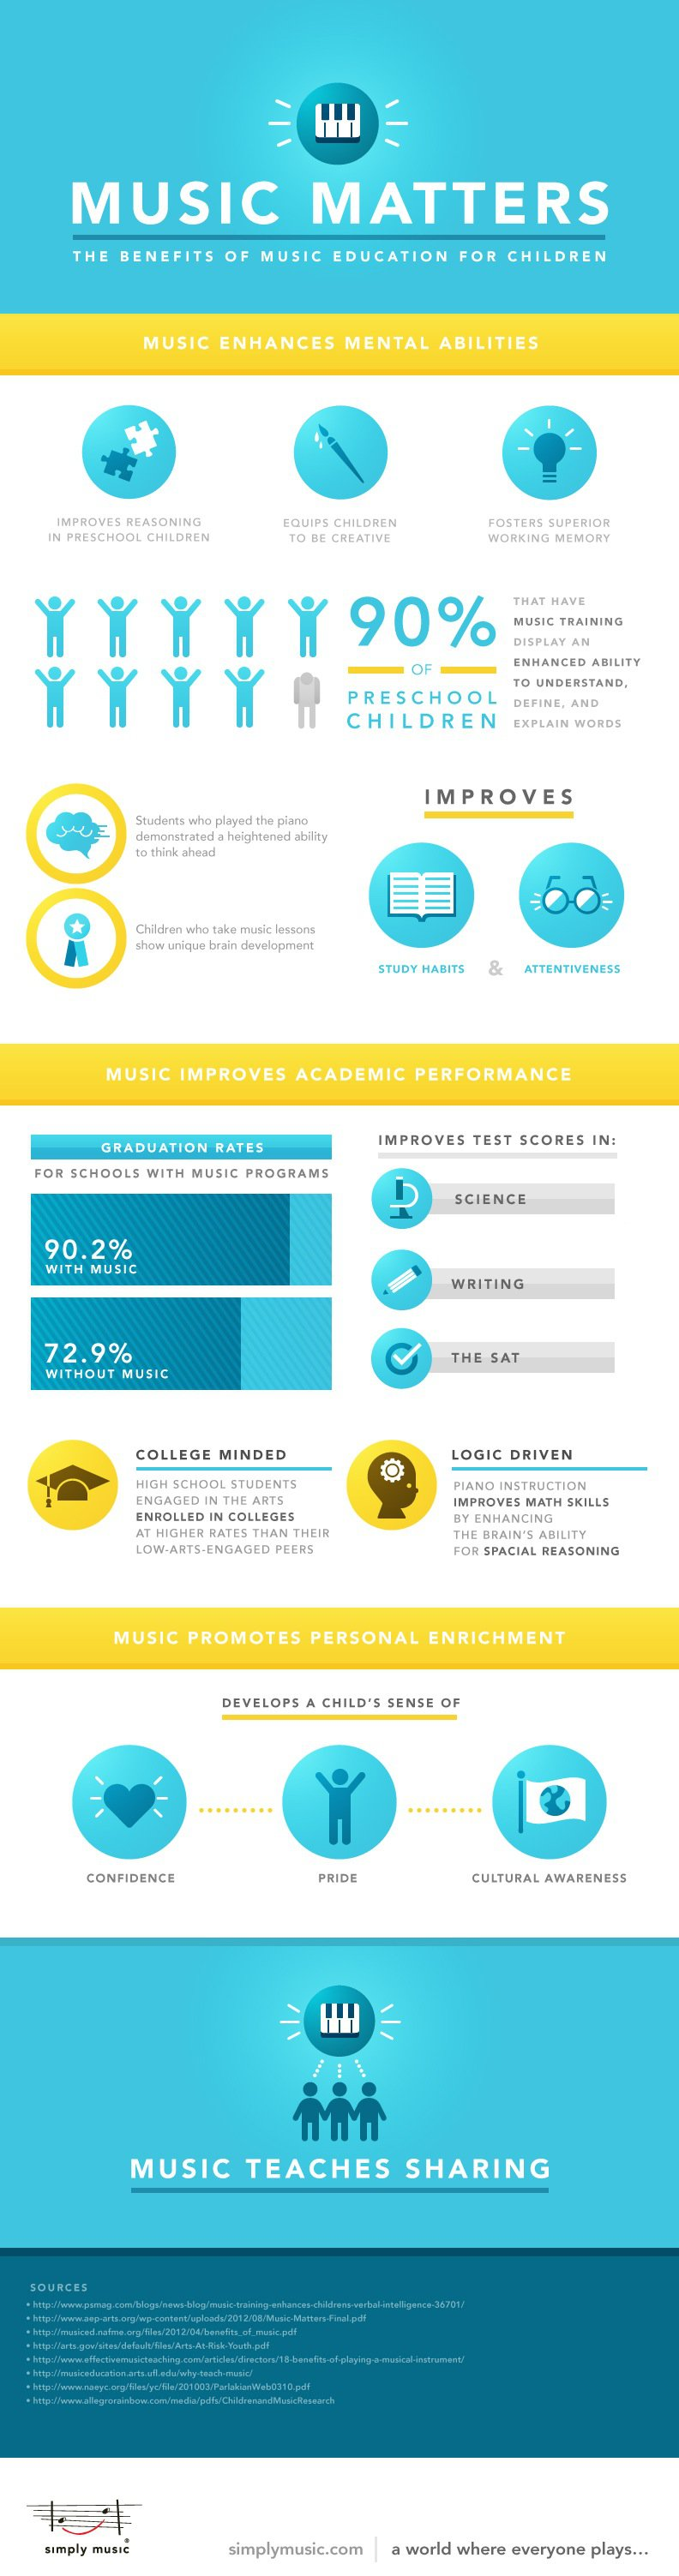 the benefits of music education essay